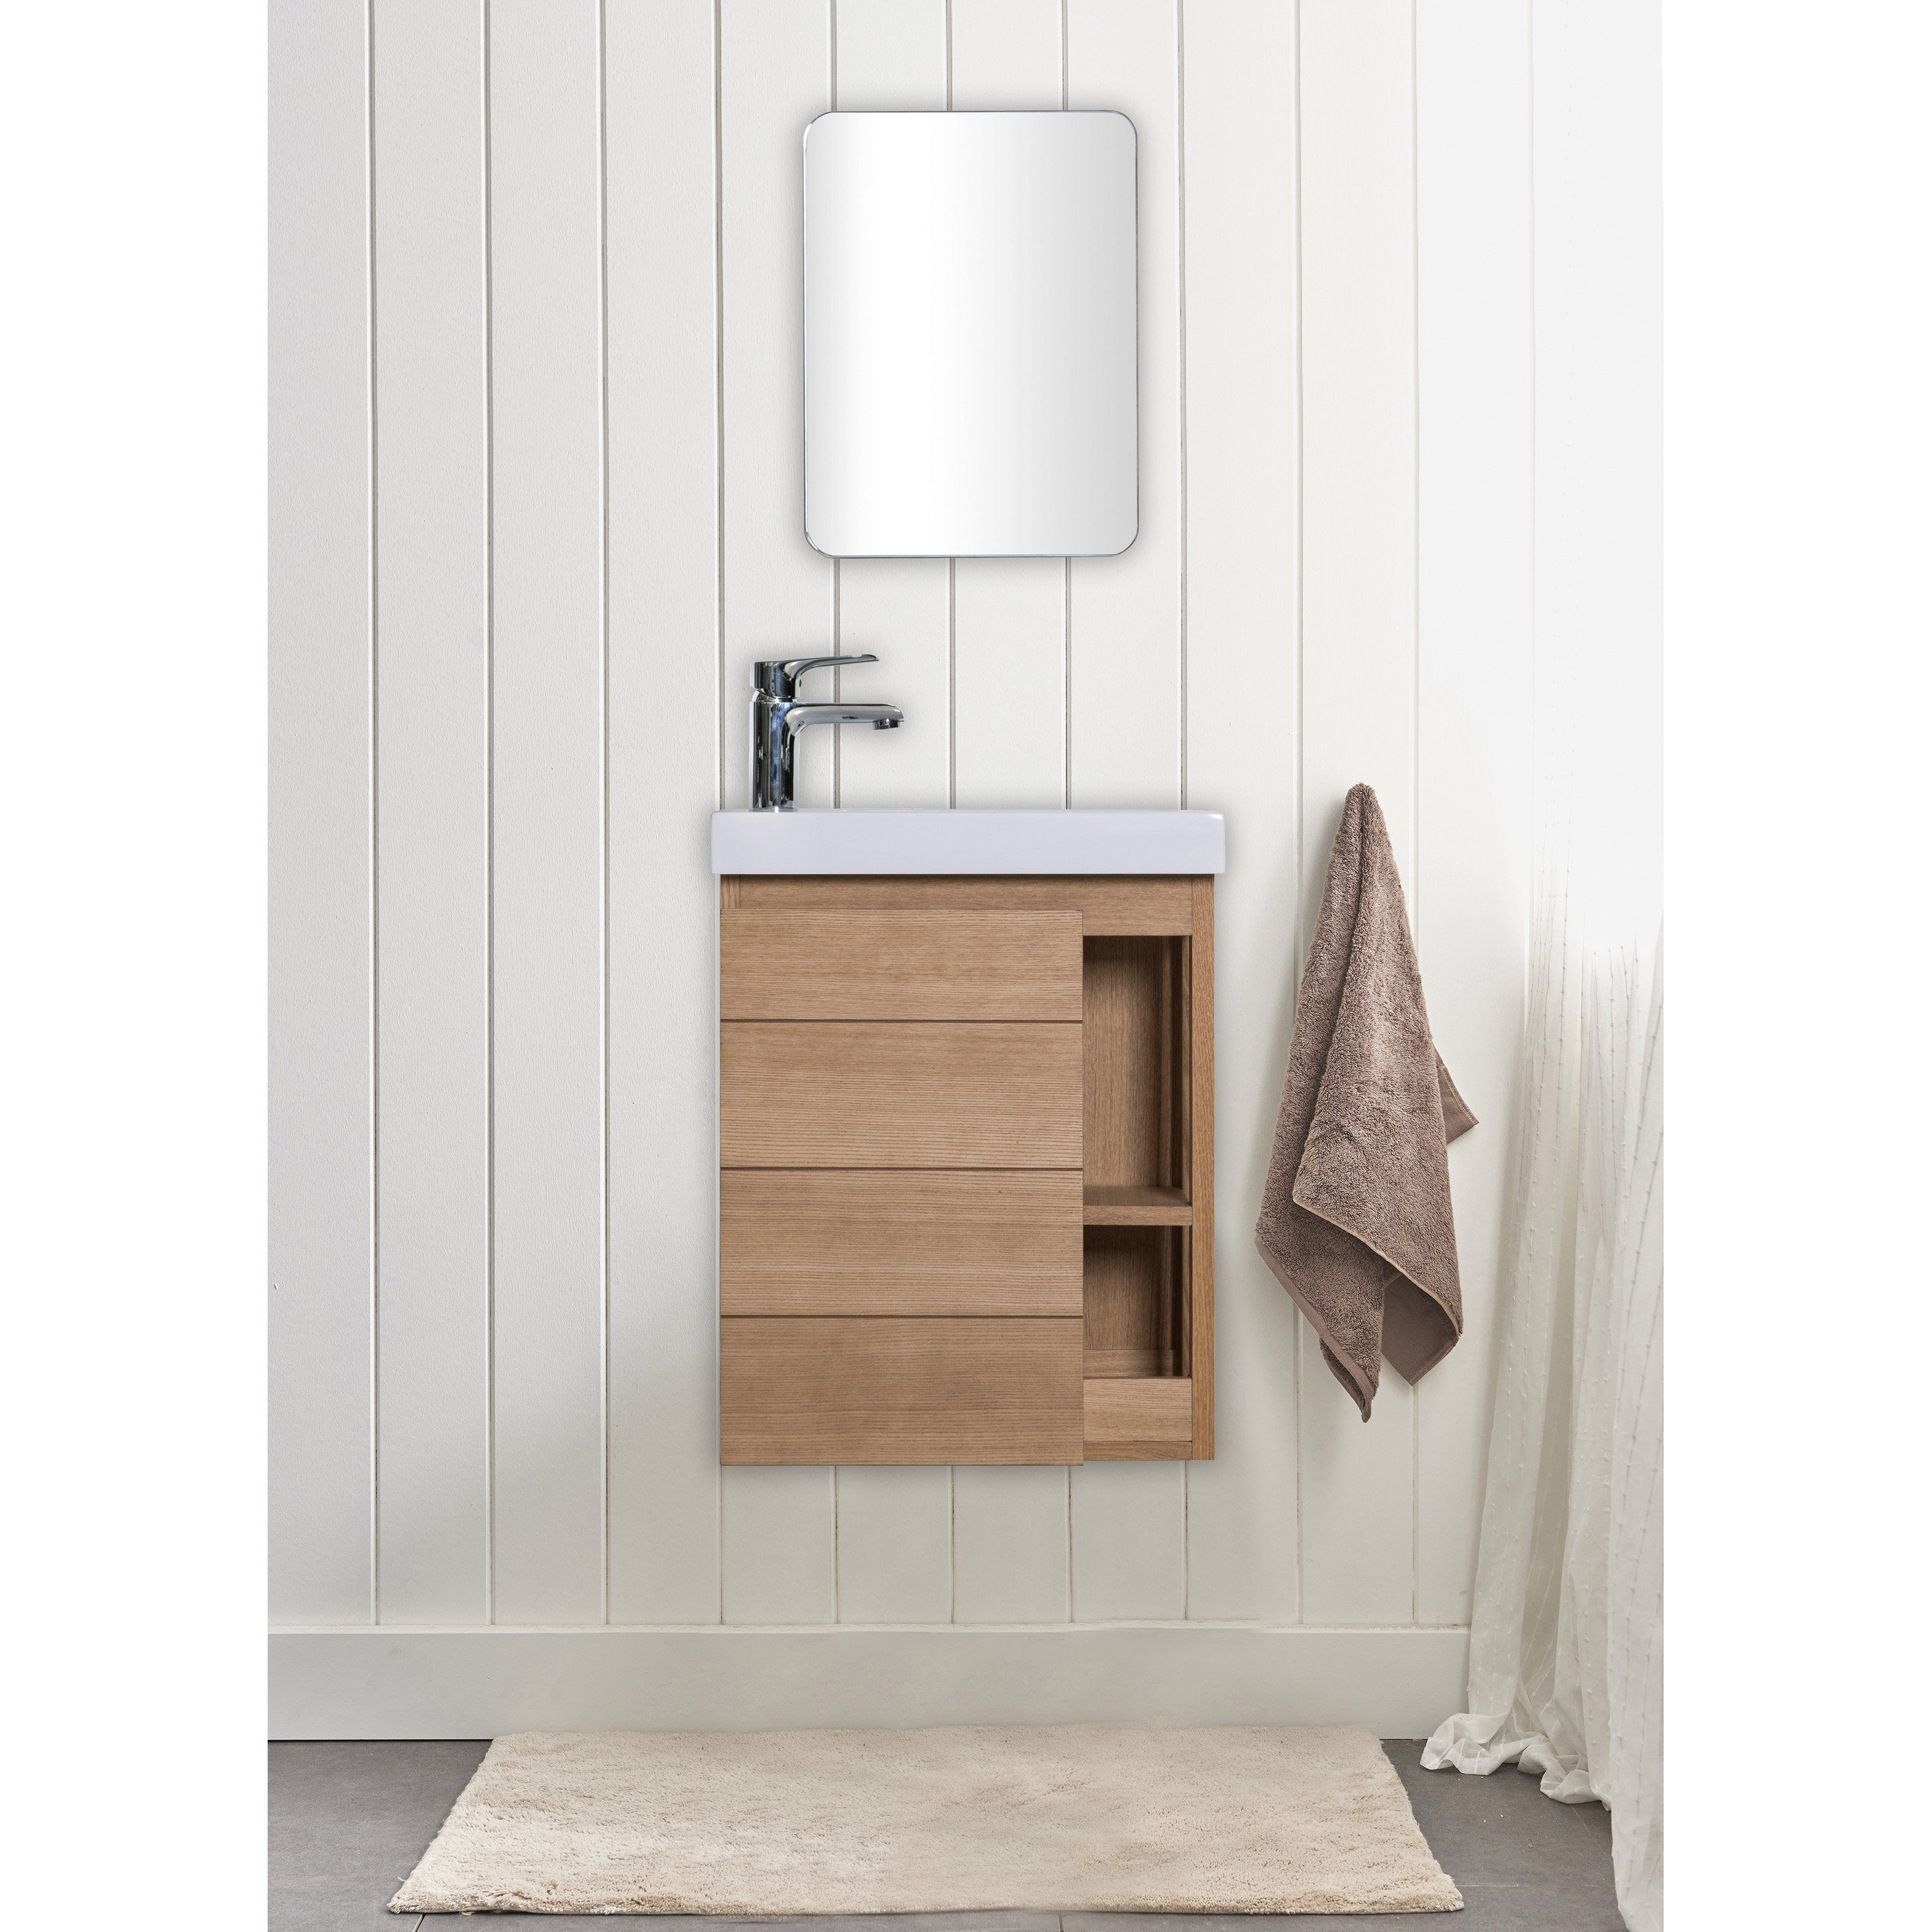 Epingle Par Scott Kuhn Sur Powder Room Remodel En 2020 Meuble Lave Main